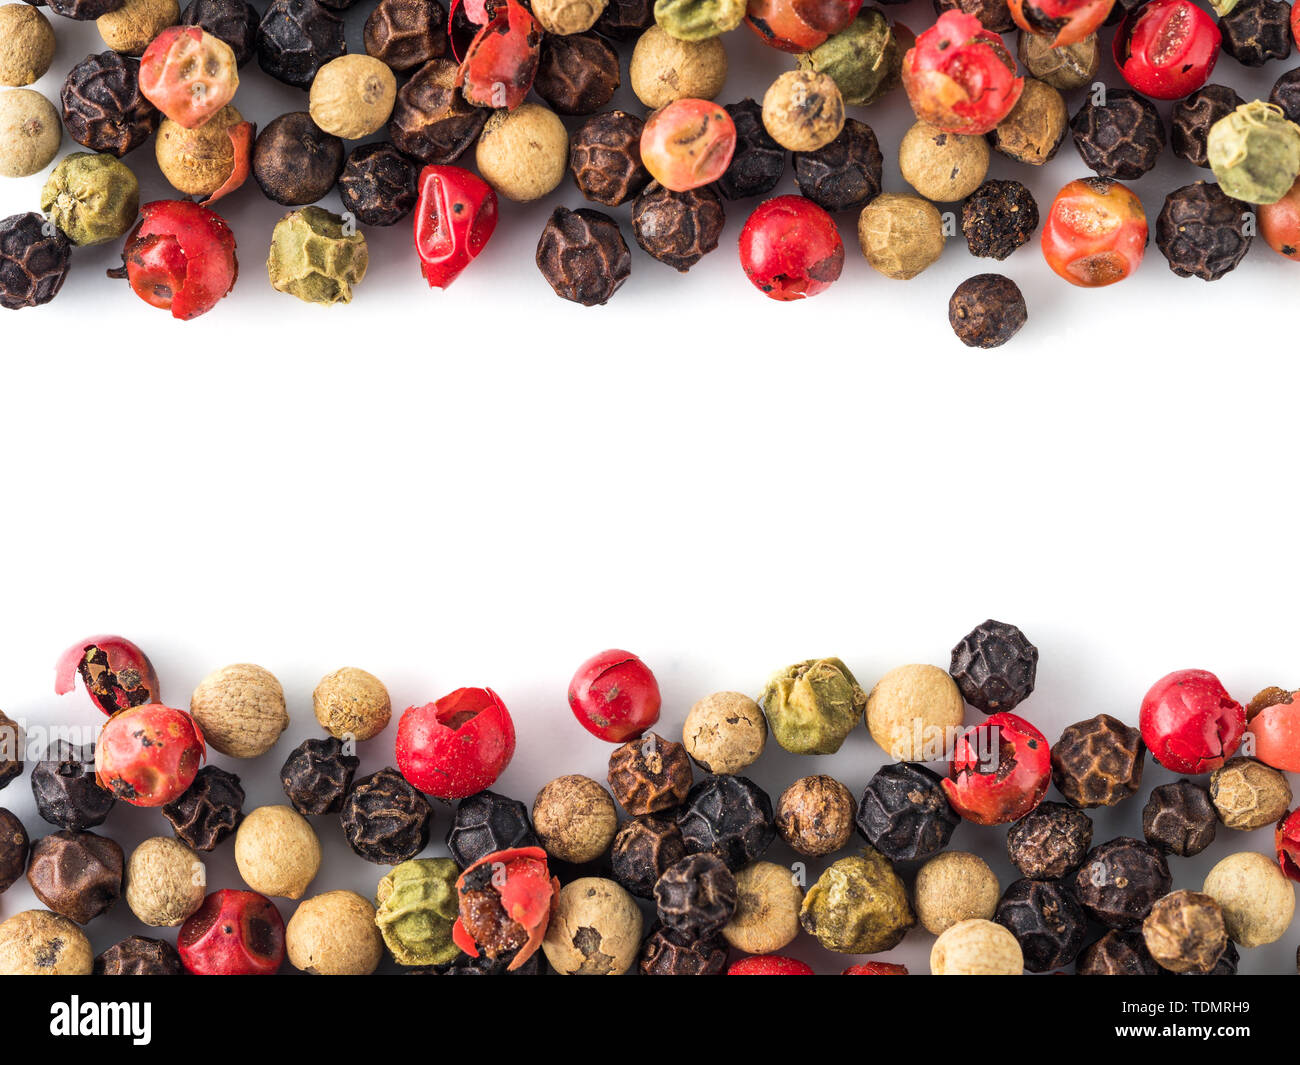 Mixed peppercorns background with white copy space in center. Food background with peppercorns. Different colored peppercorns pattern on white background, top view or flat lay - Stock Image